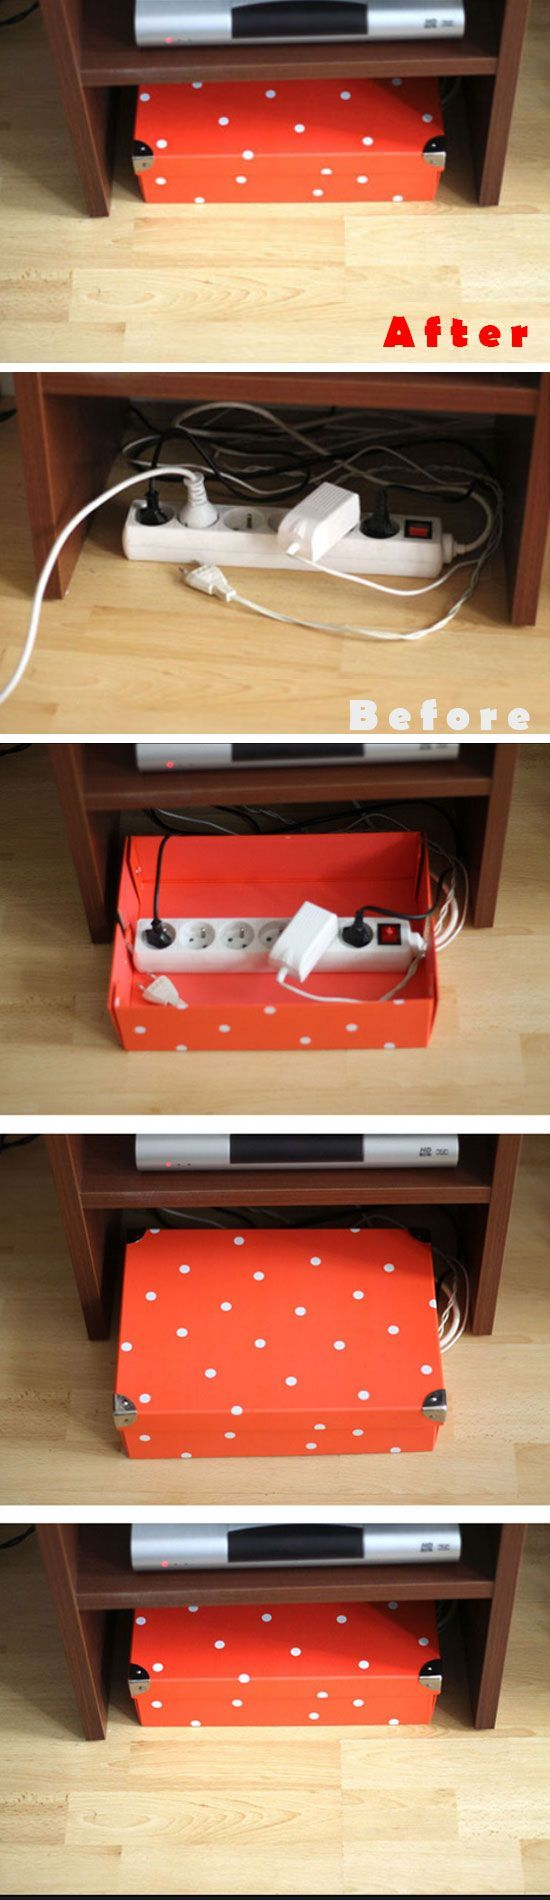 Hide Cables in Gift Box | 25 Life Hacks Every Girl Should Know | Easy Organization Ideas for the Home